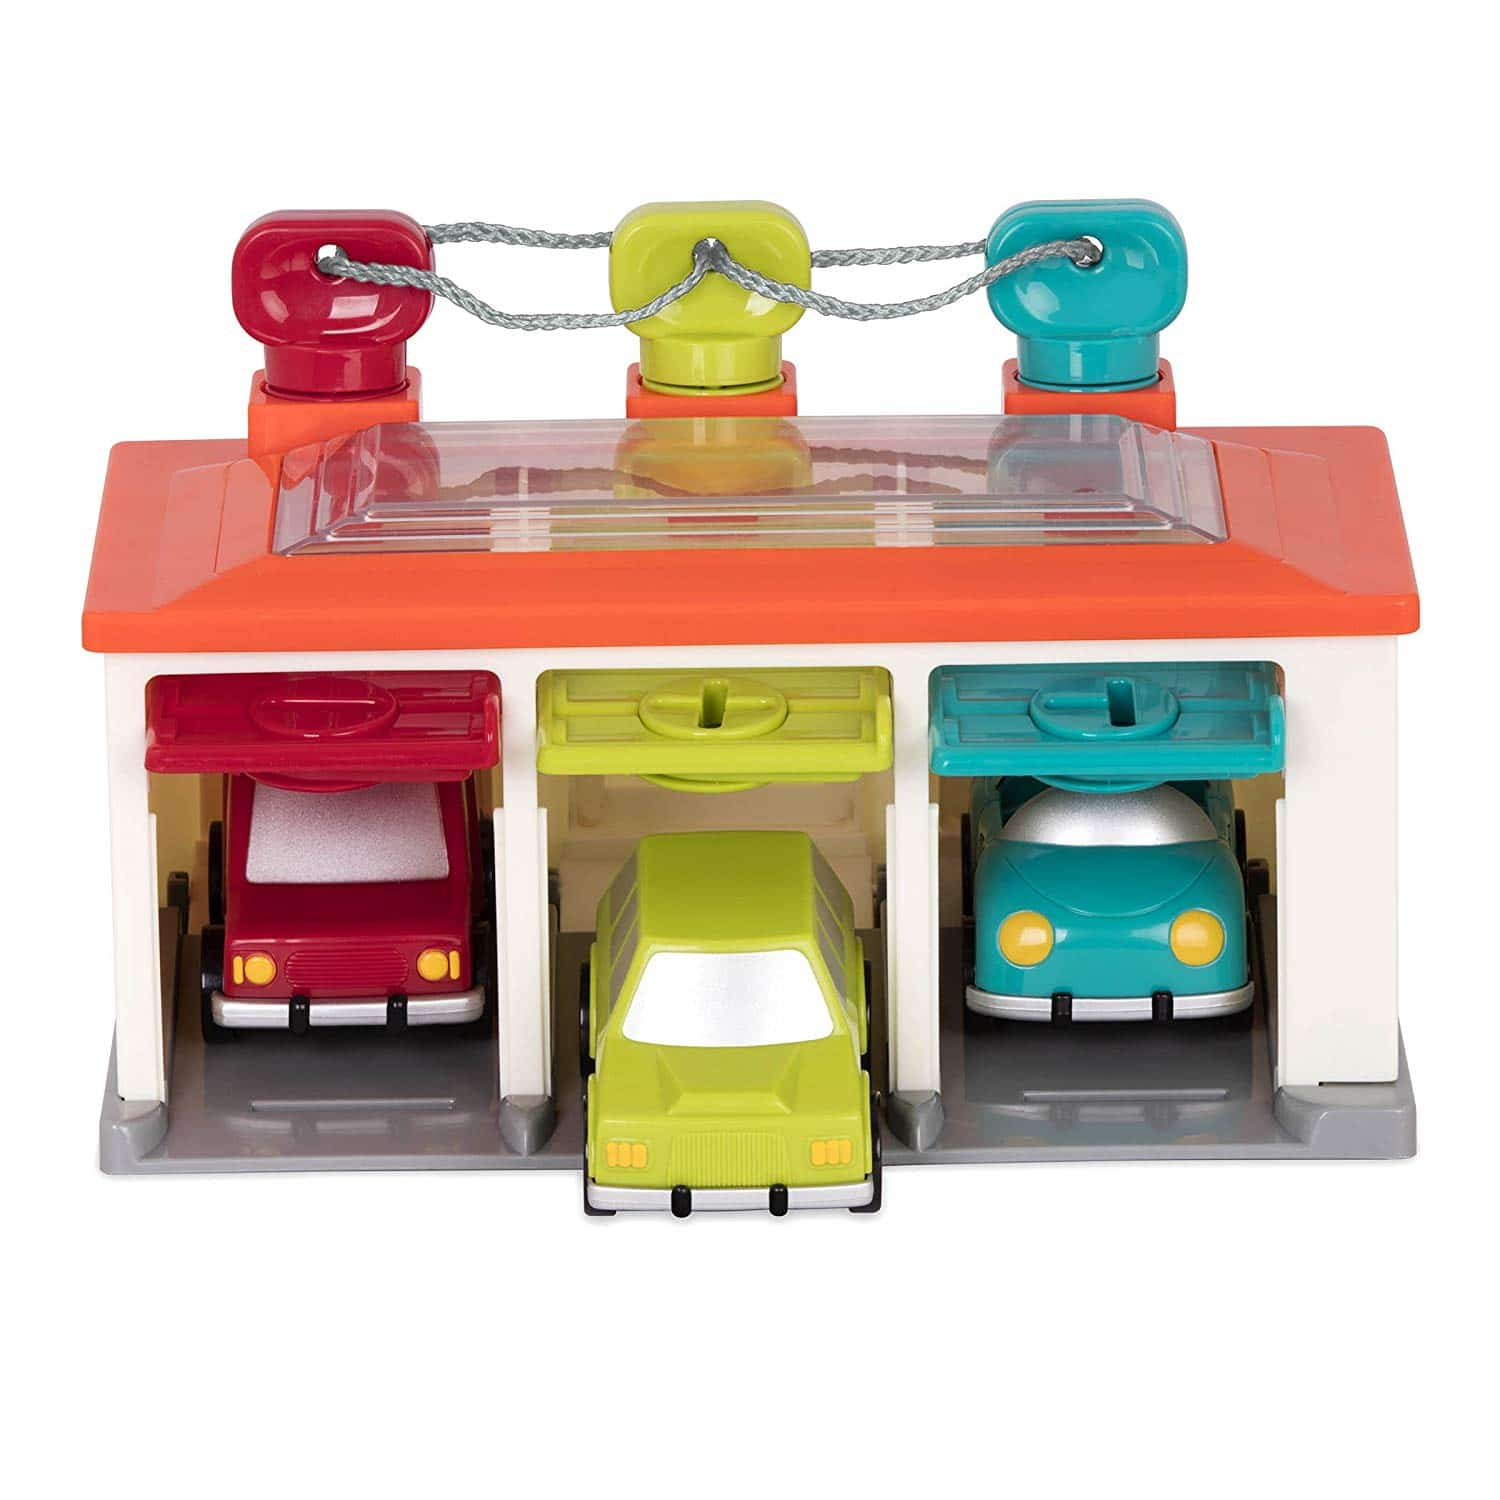 Toddler Toys With Keys and Locks